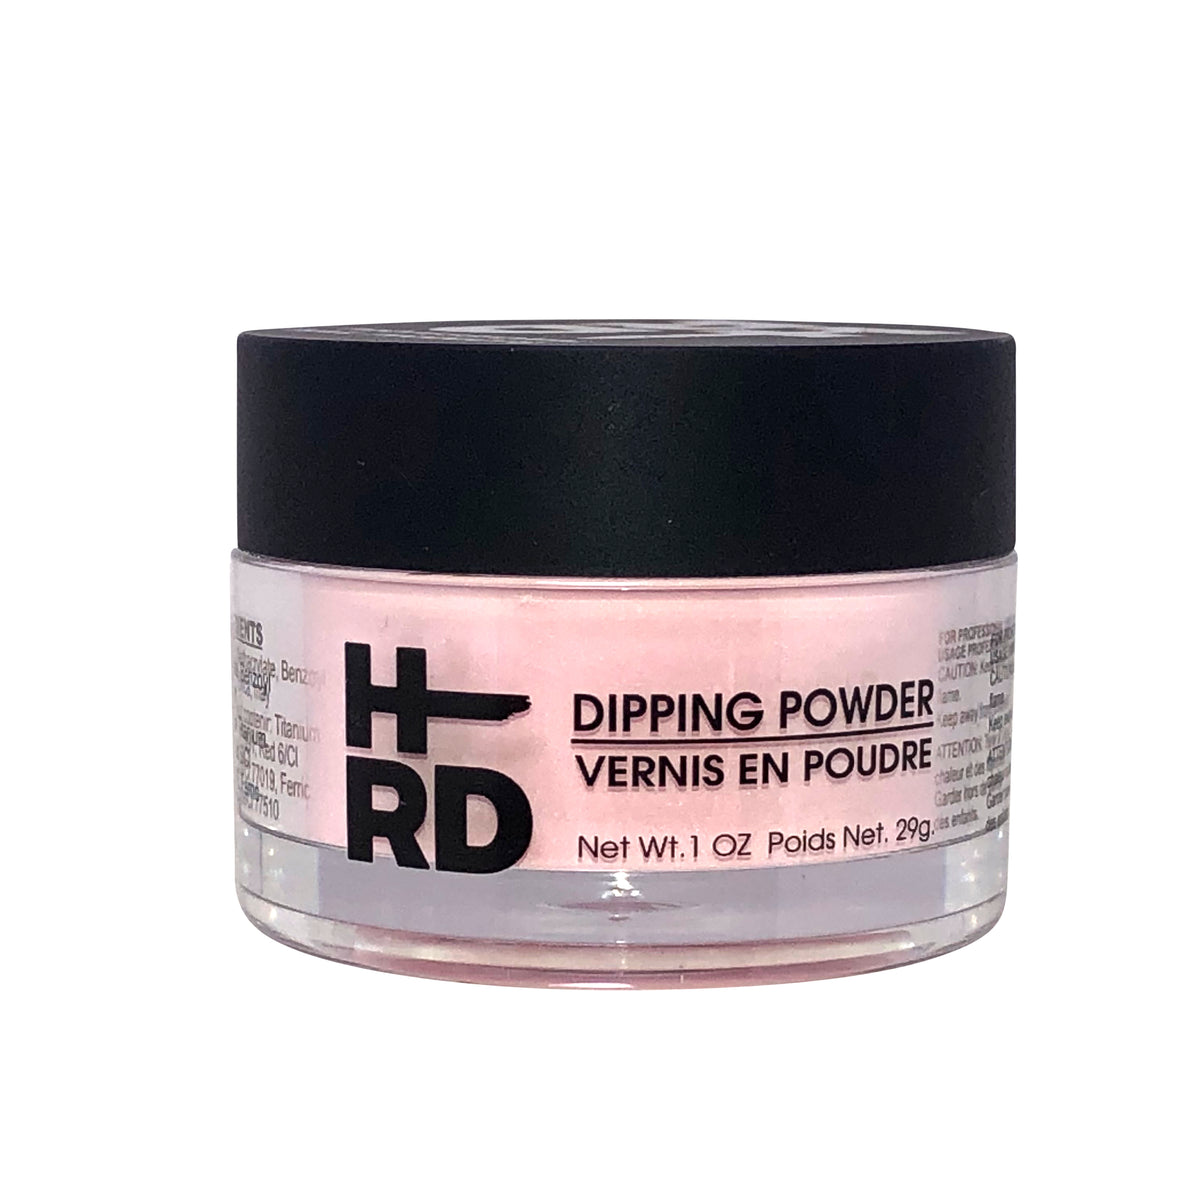 HRD-005 powder